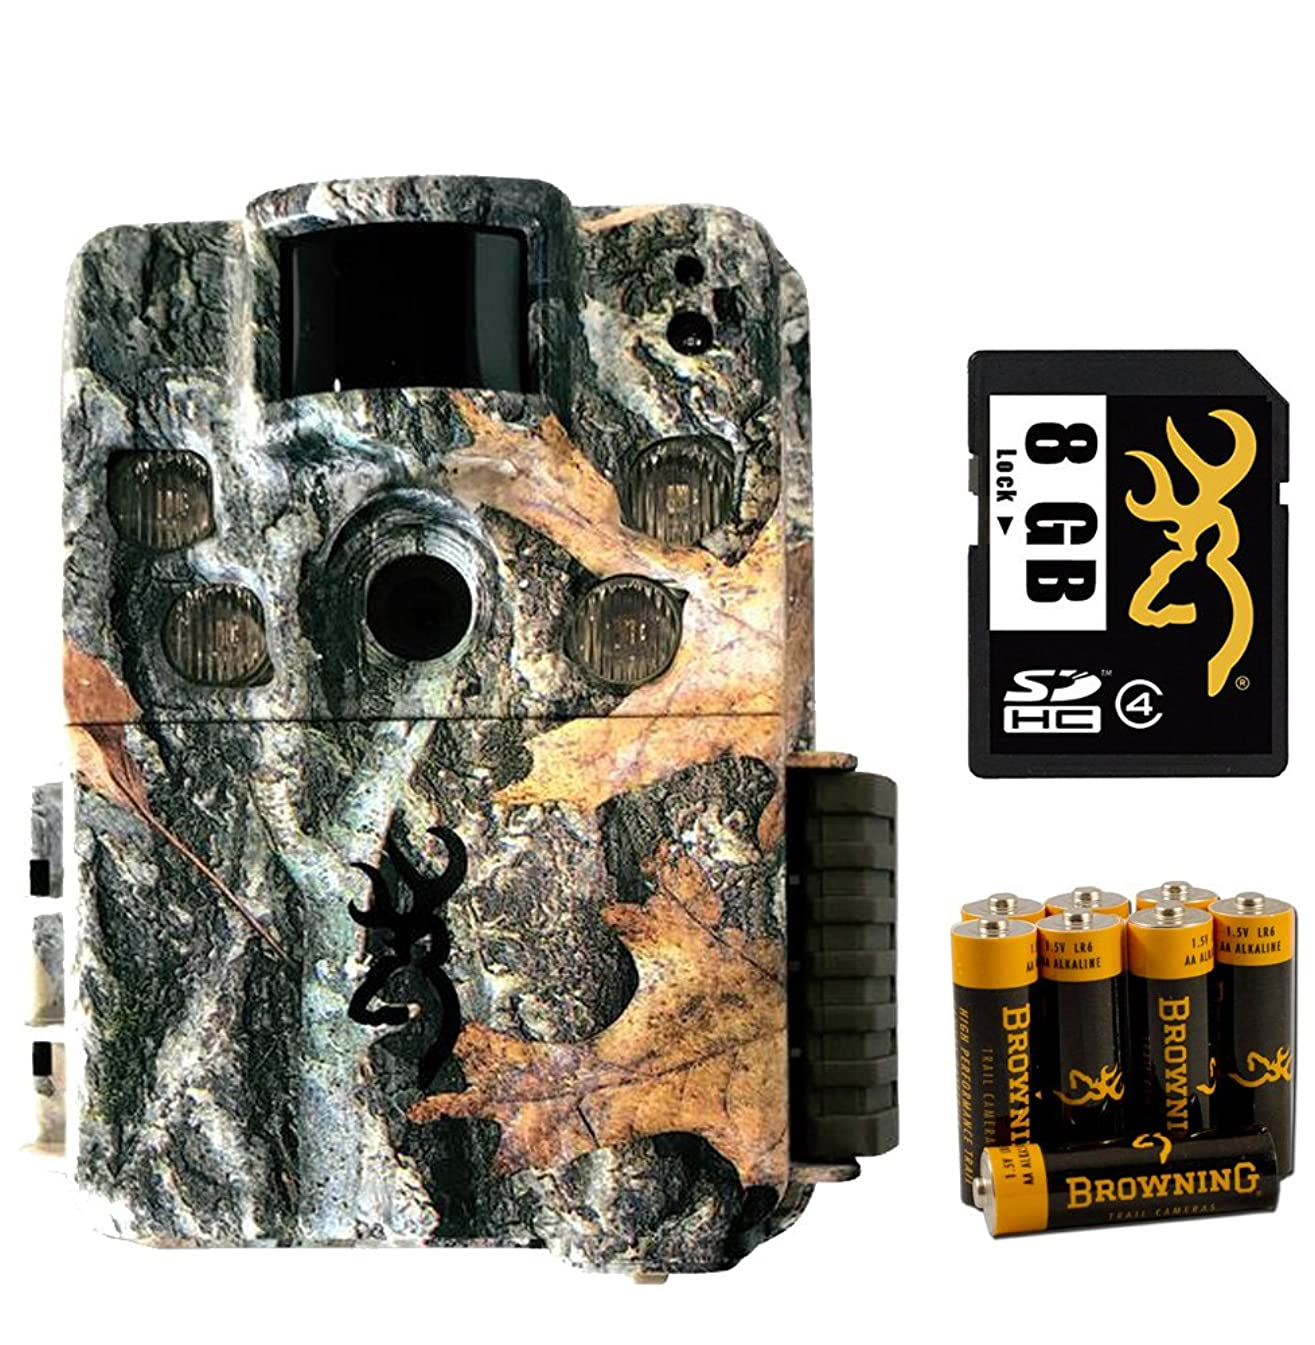 Browning Trail Cameras 5HDP Bundle Trail 8GB SD Card and AA Batteries-3 Items